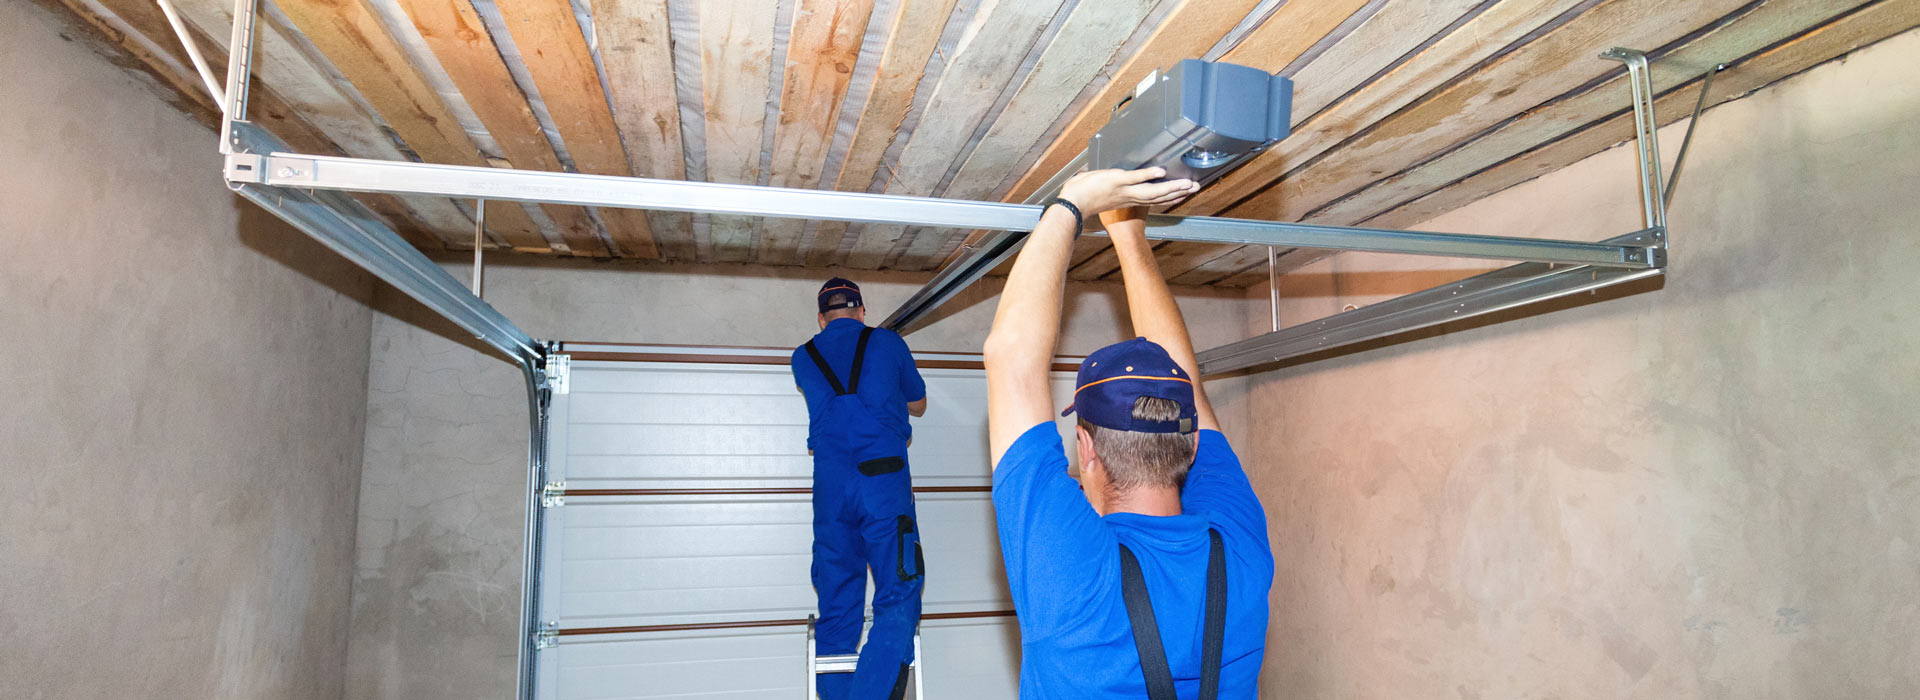 Garage And Overhead Door Repair Services In Appleton Wi